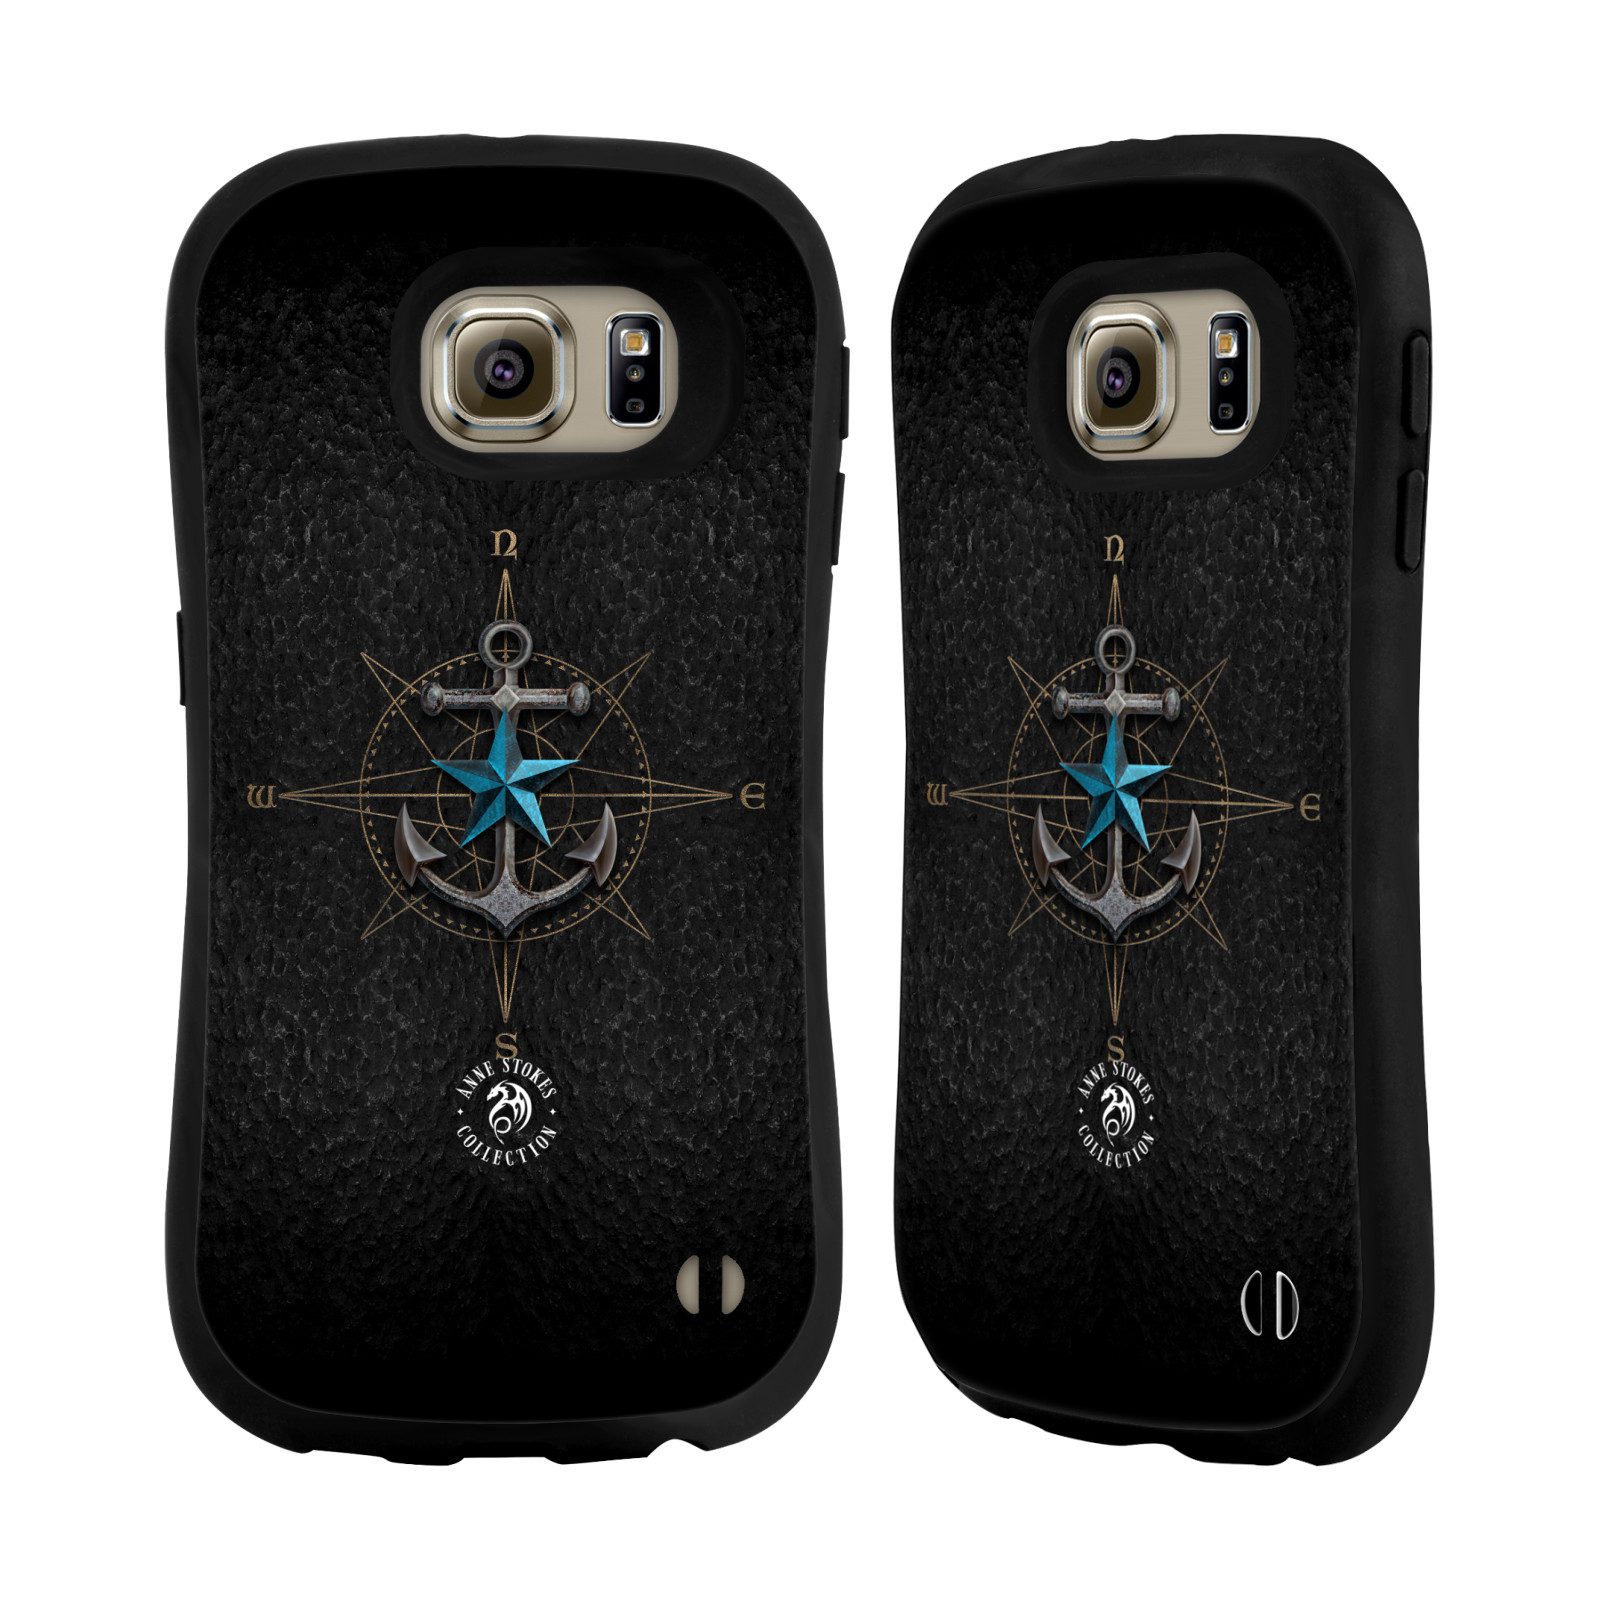 OFFICIEL-ANNE-STOKES-ORNEMENTS-ETUI-COQUE-HYBRIDE-POUR-SAMSUNG-TELEPHONES